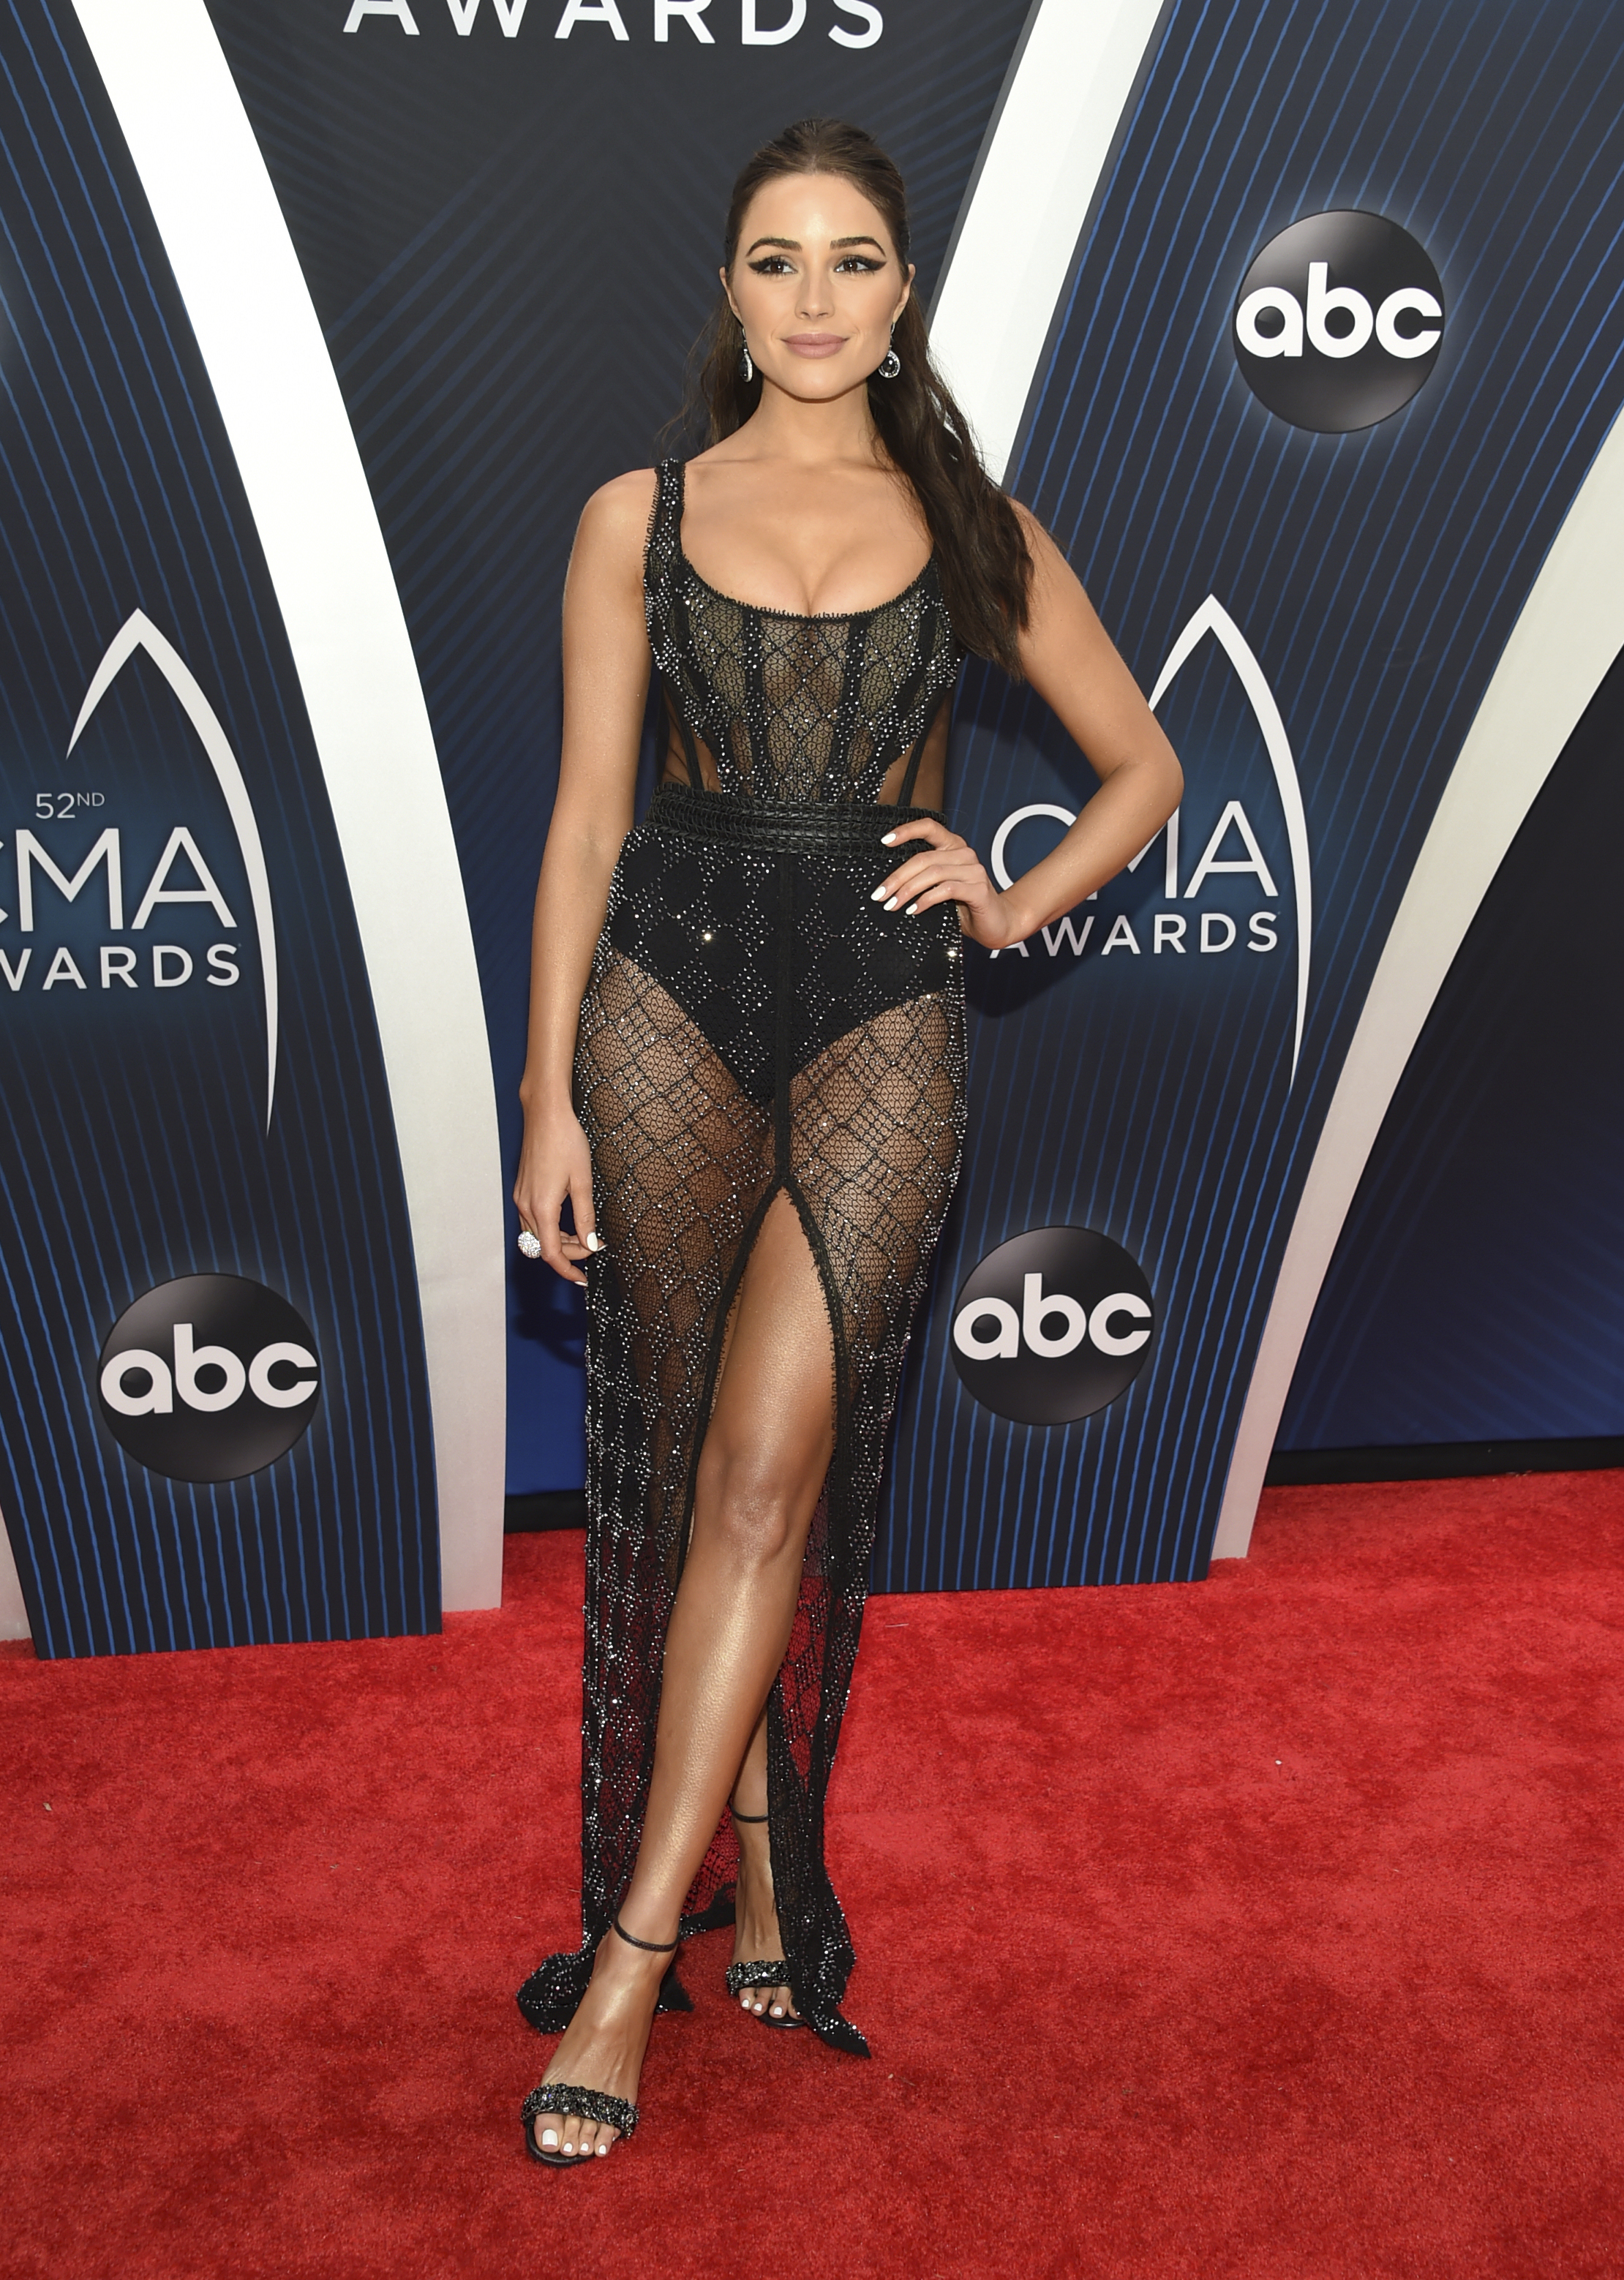 "<div class=""meta image-caption""><div class=""origin-logo origin-image ap""><span>AP</span></div><span class=""caption-text"">Olivia Culpo arrives at the 52nd annual CMA Awards at Bridgestone Arena on Wednesday, Nov. 14, 2018, in Nashville, Tenn. (Photo by Evan Agostini/Invision/AP) (Evan Agostini/Invision/AP)</span></div>"